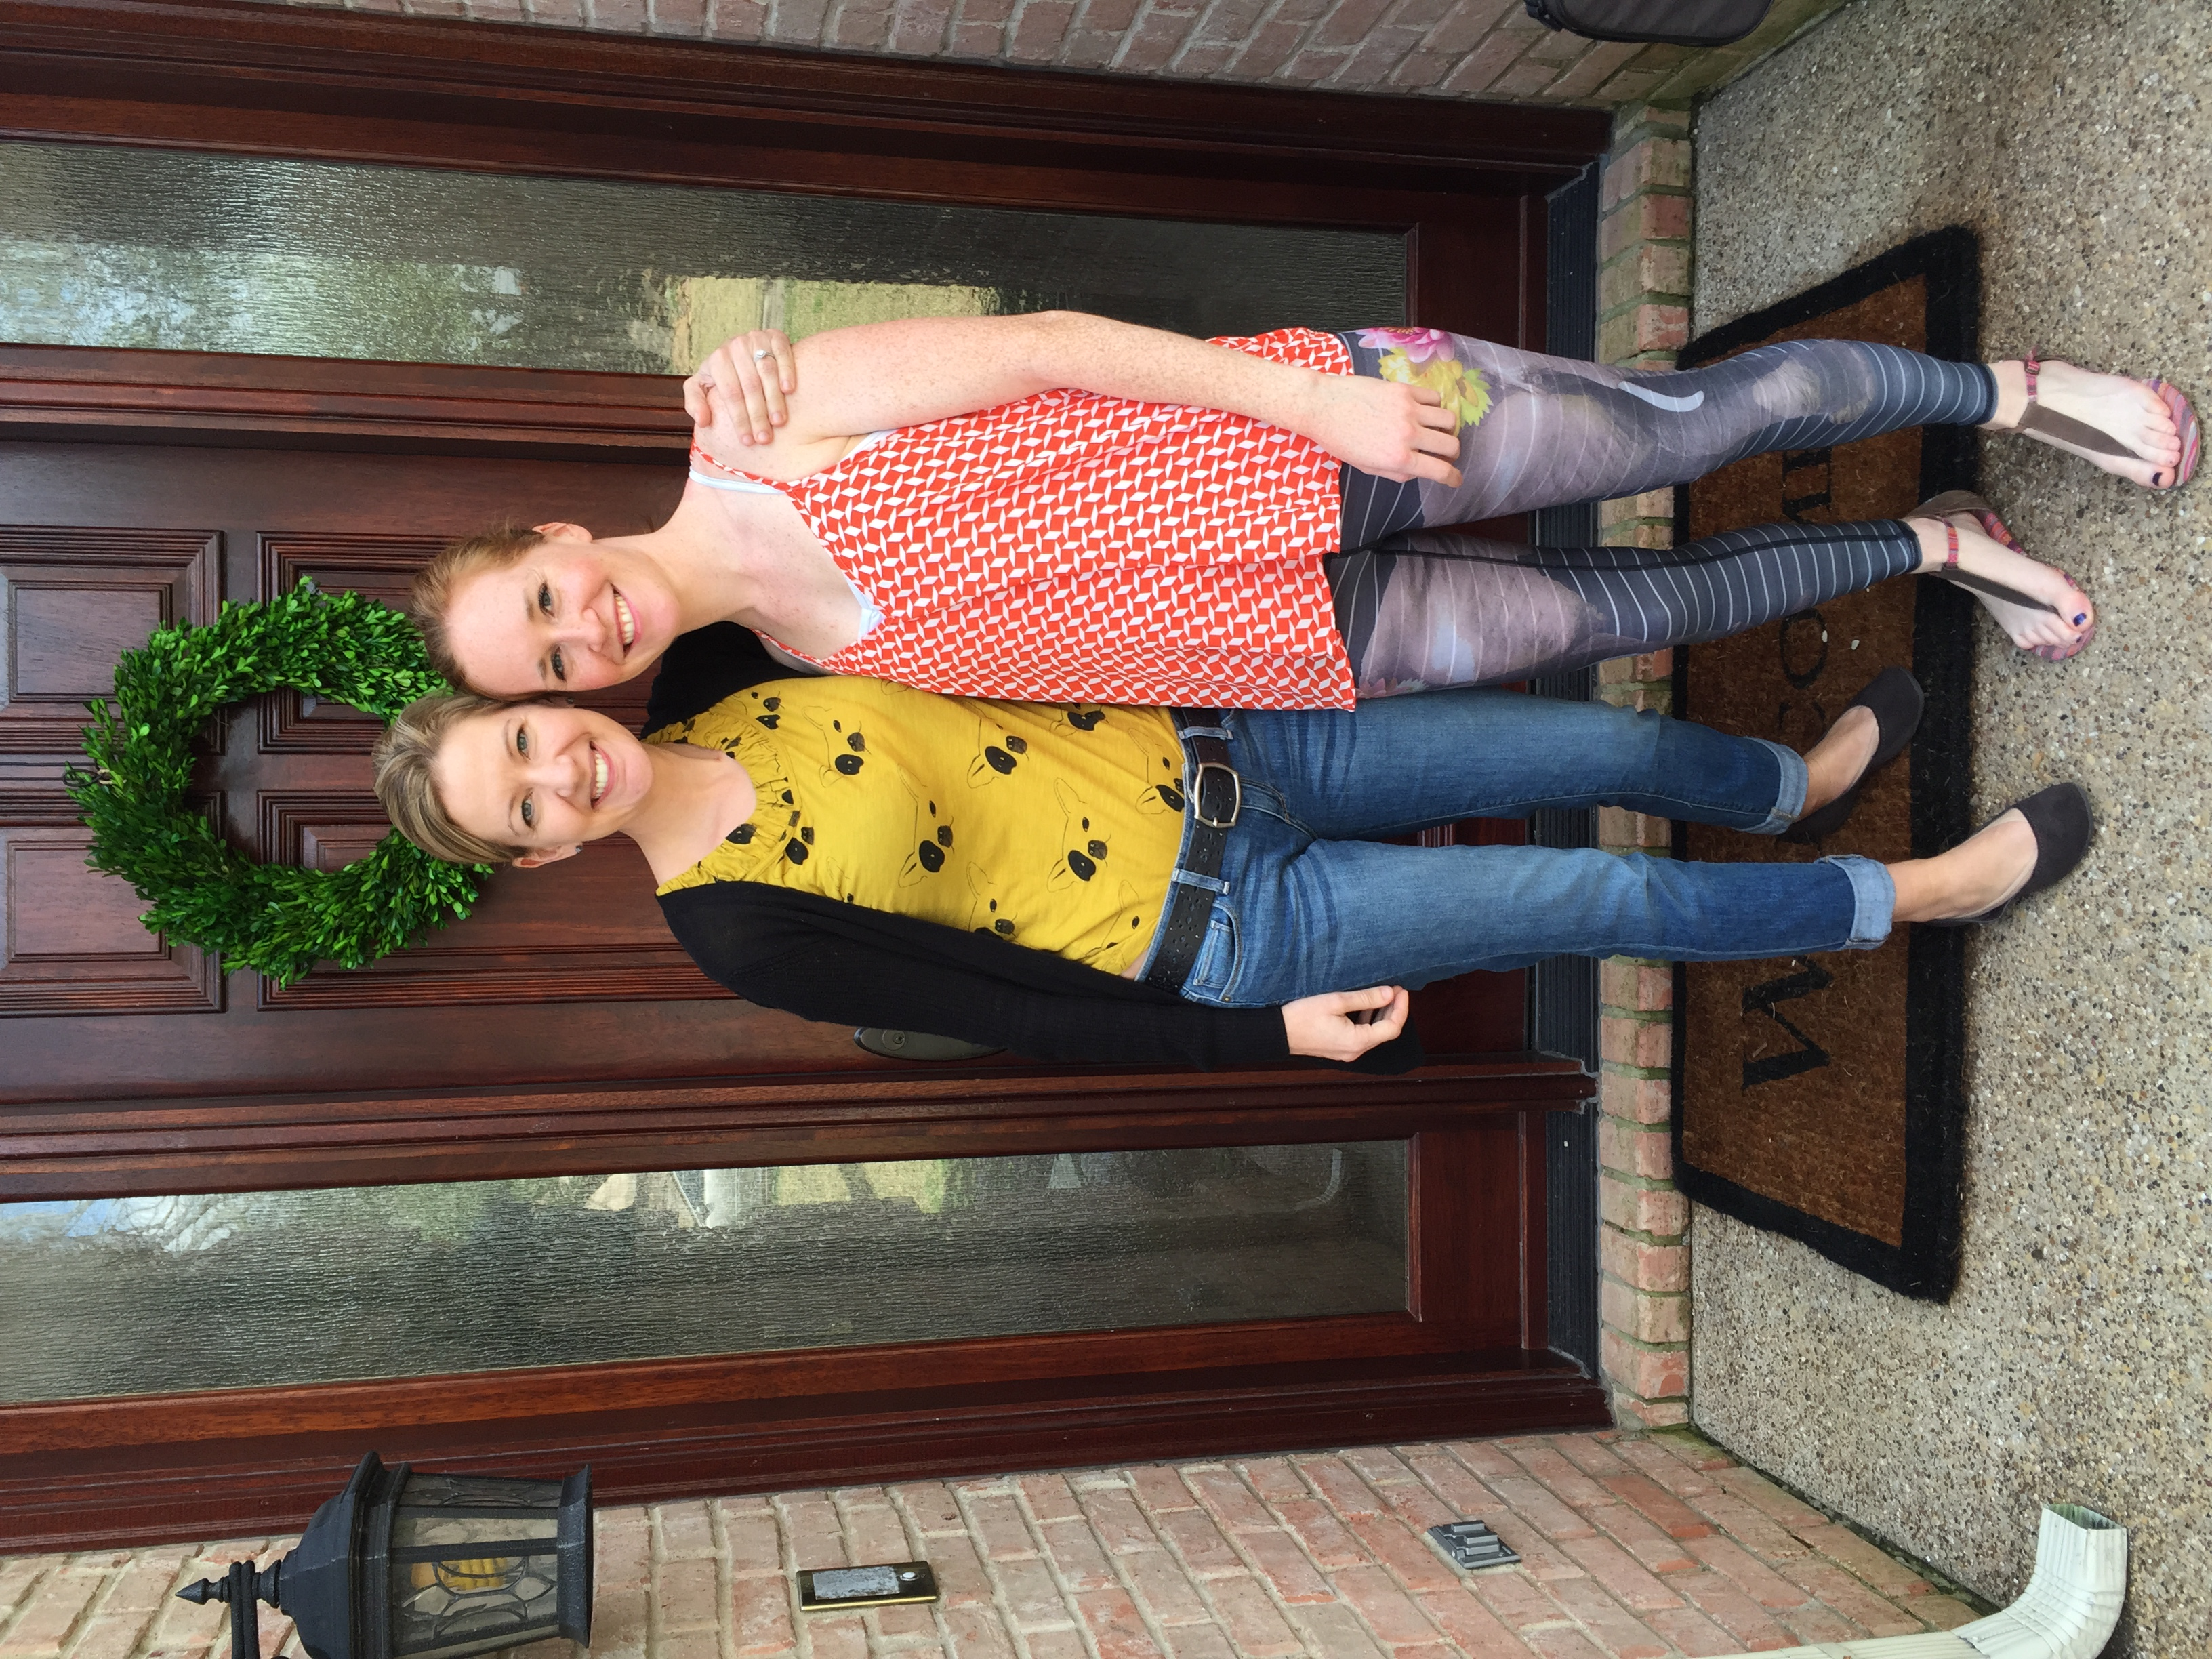 Me and Angie in Dallas, March 2015. After agreat lesson - and I'm still smiling (and so is she!).Ignore the pants - my mom says they make me look like I have Gangrene. She doubts my yoga-chic fashion choices all of the time.